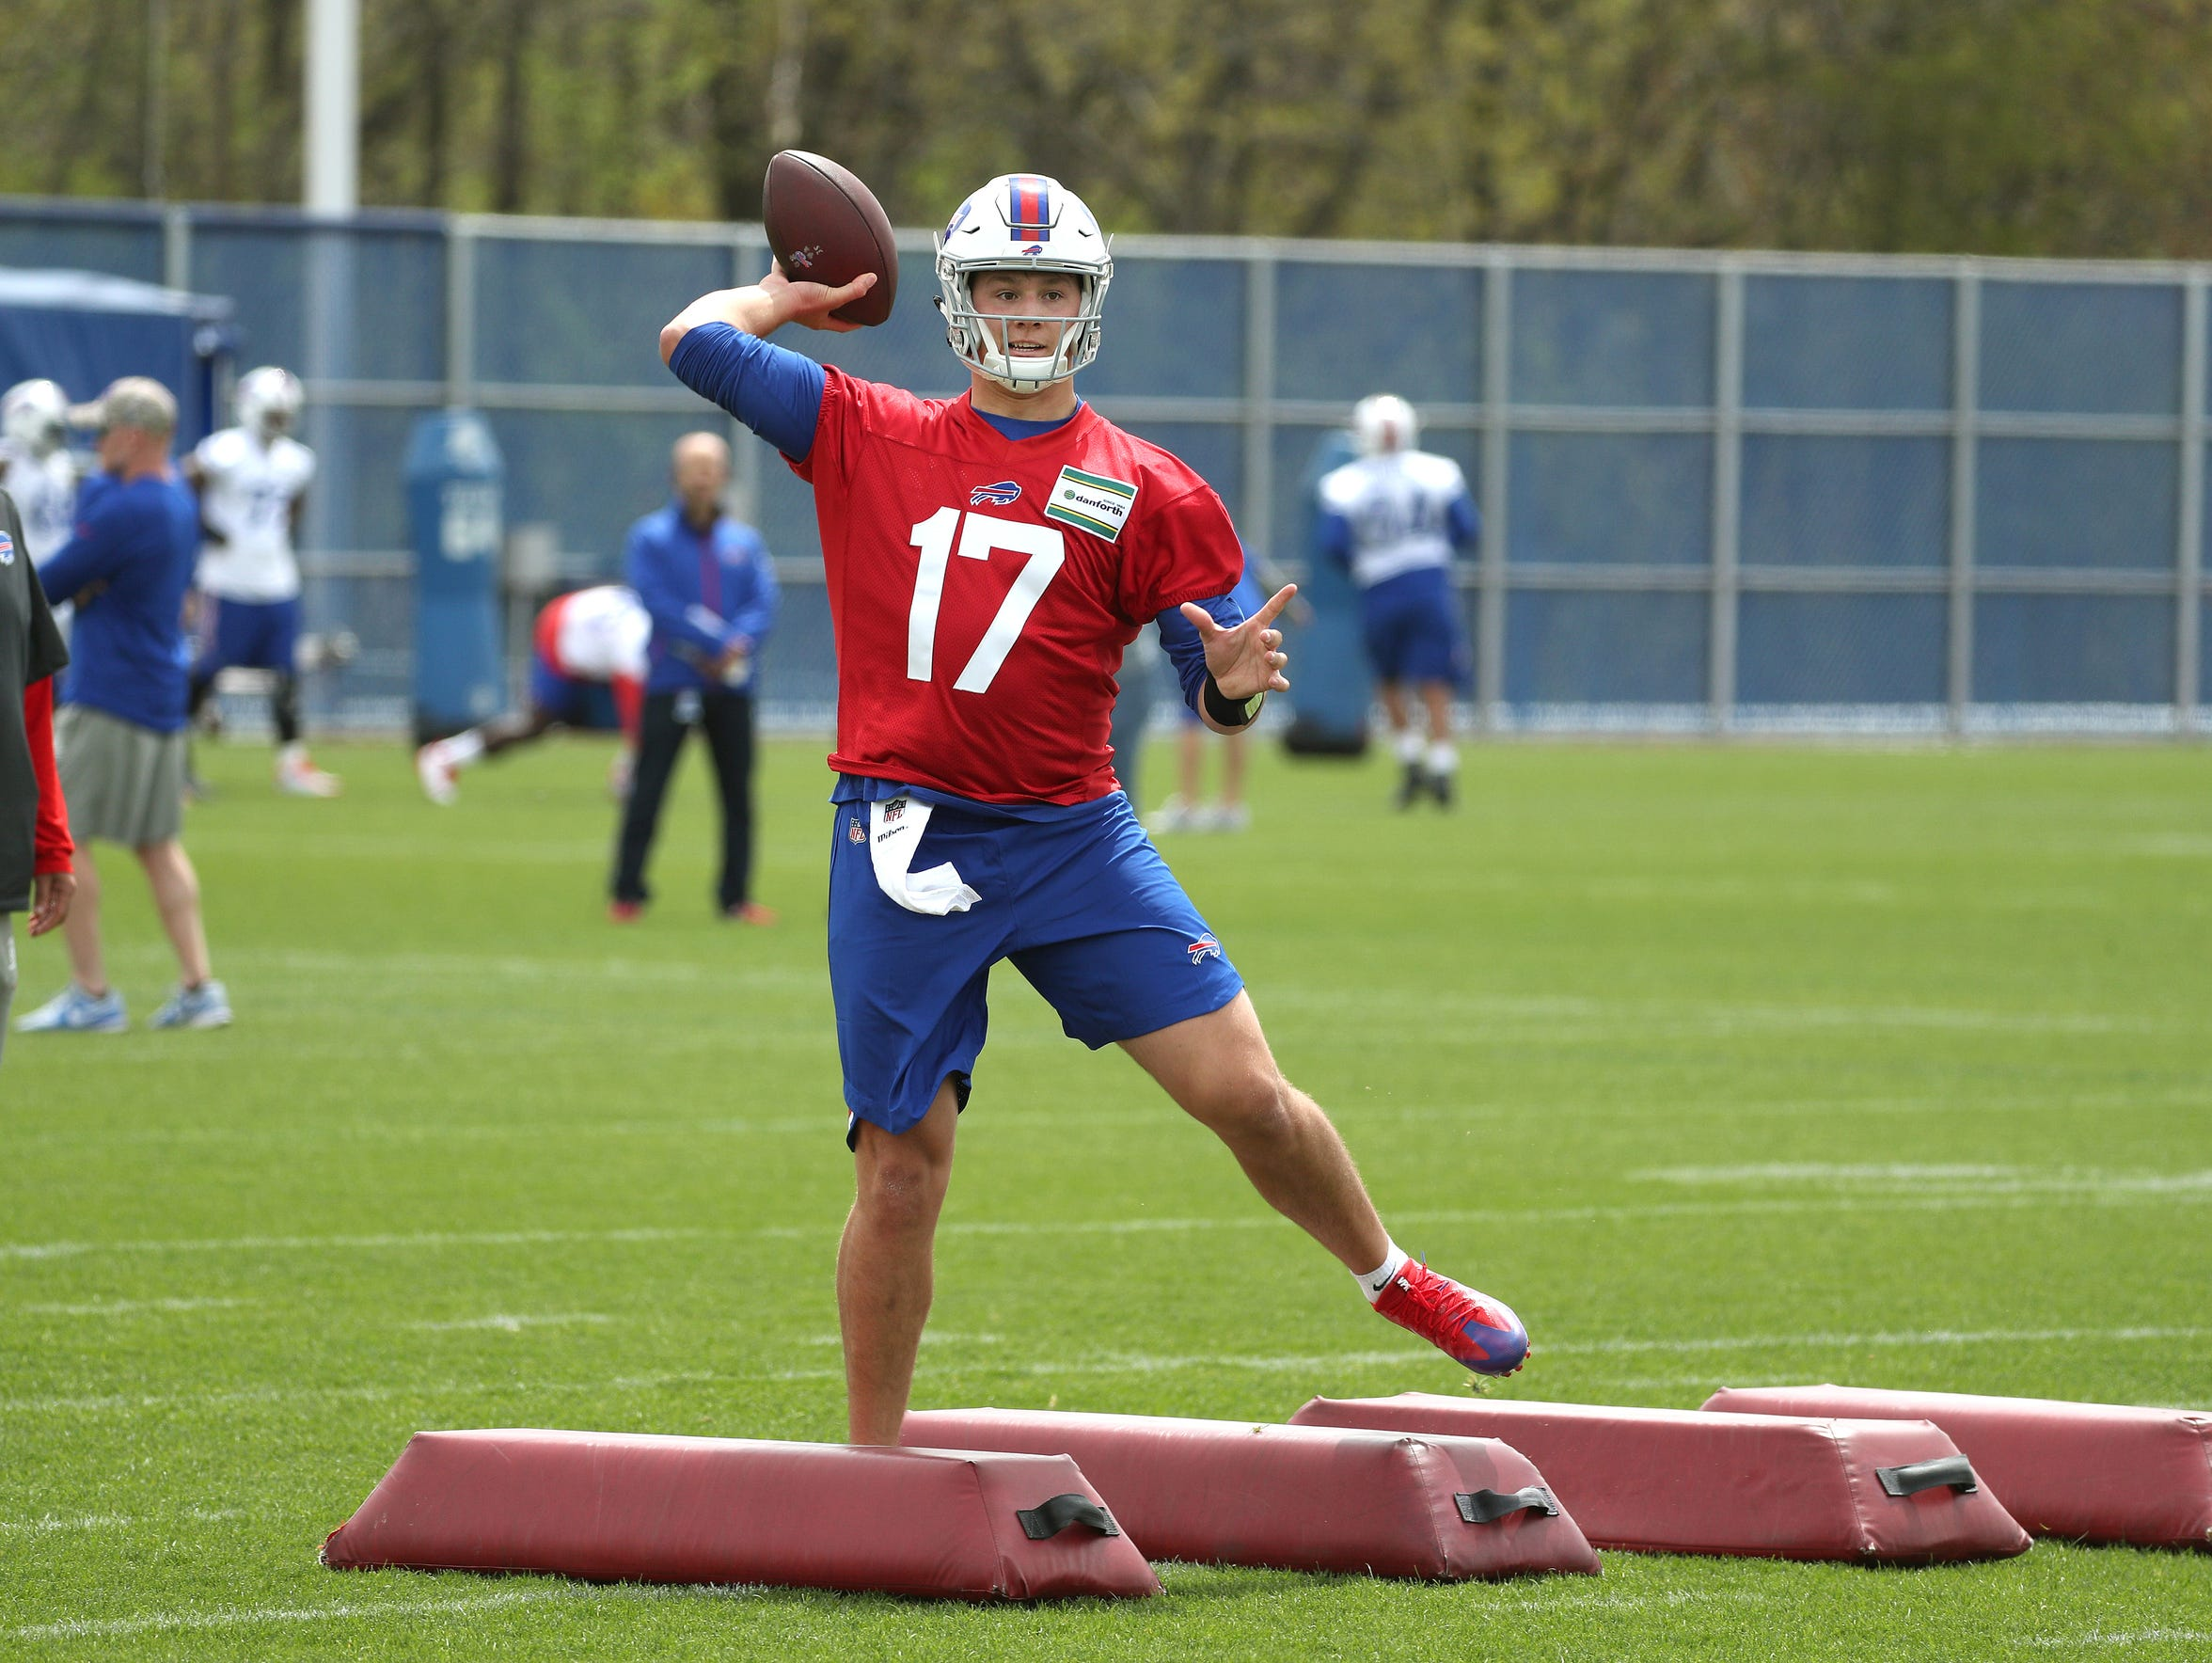 Bills top draft pick quarterback Josh Allen talking